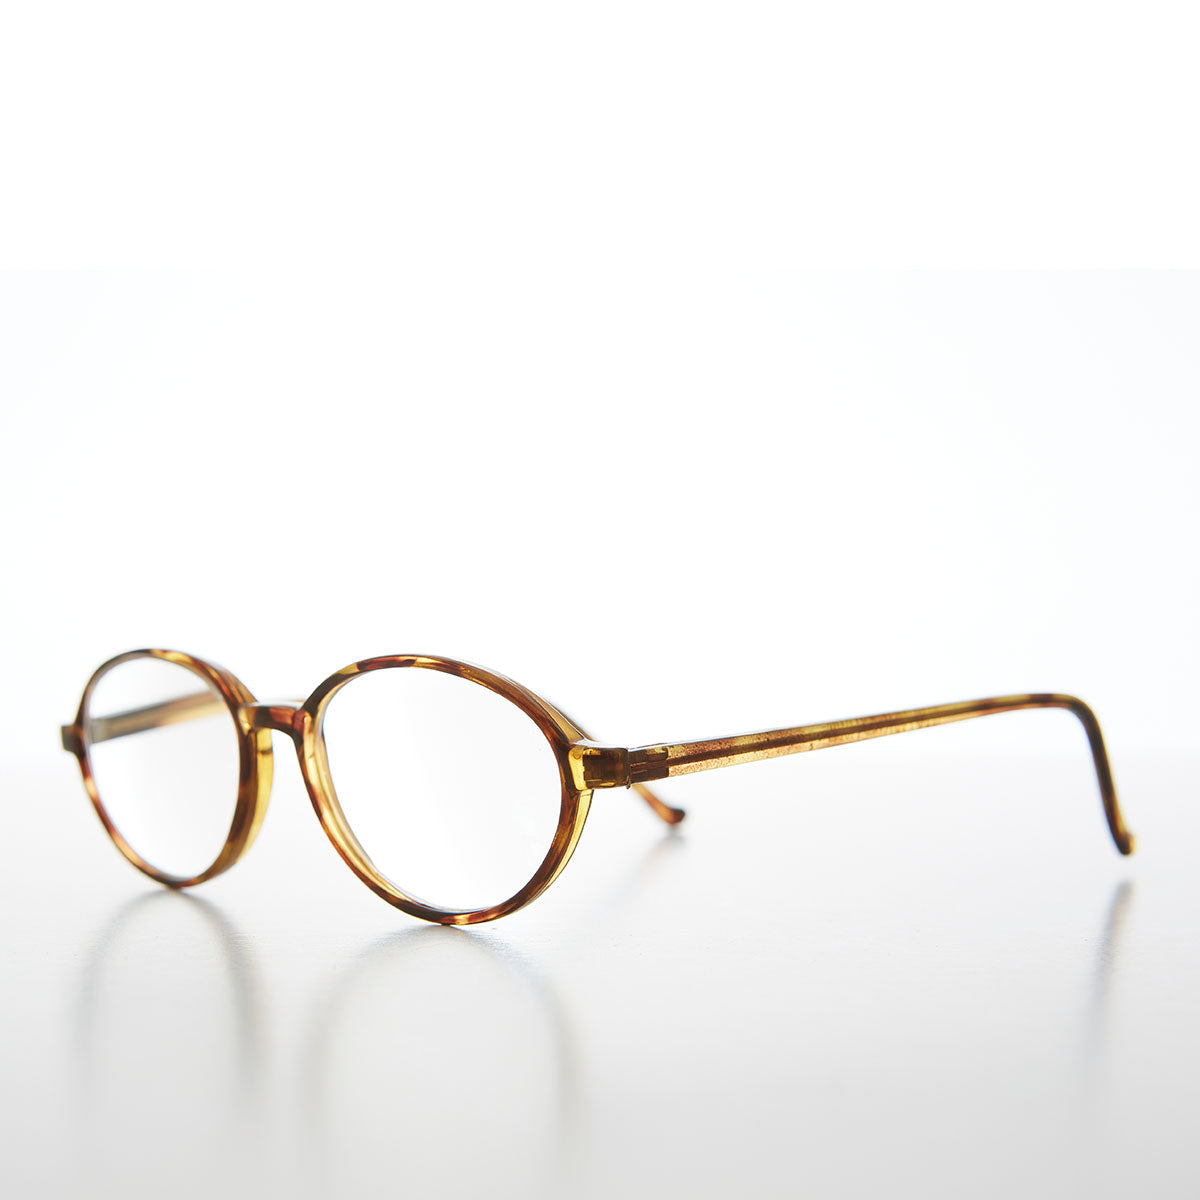 Oval Optical Quality Reading Glasses